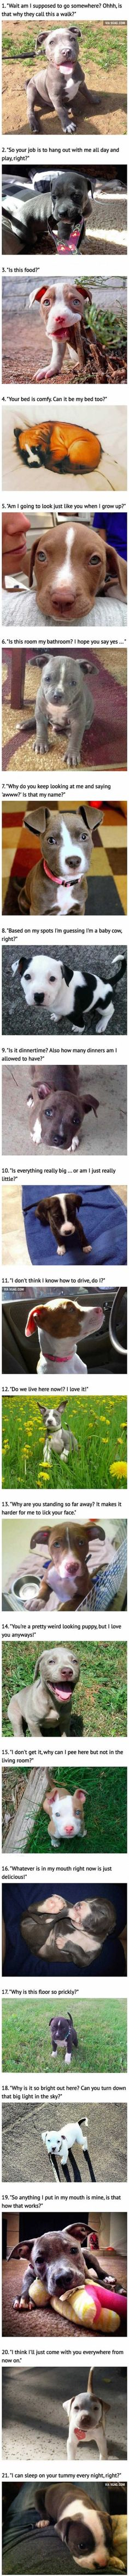 These Cute Pit Bull Puppies Haven't Quite Figured Things Out Yet